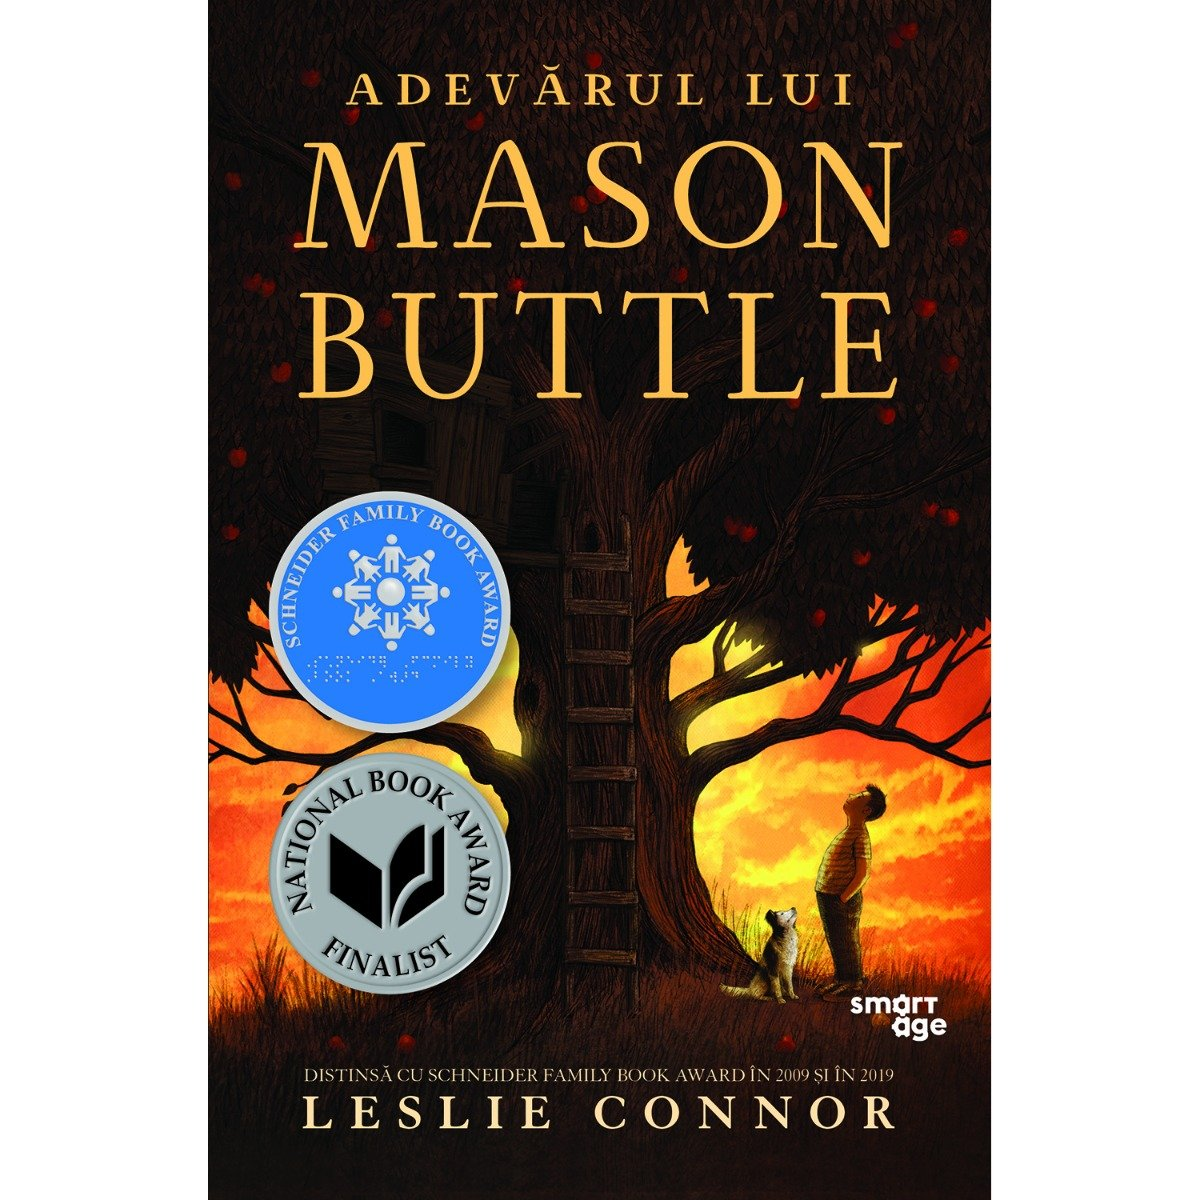 Carte Editura Corint, Adevarul lui Mason Buttle, Leslie Connor